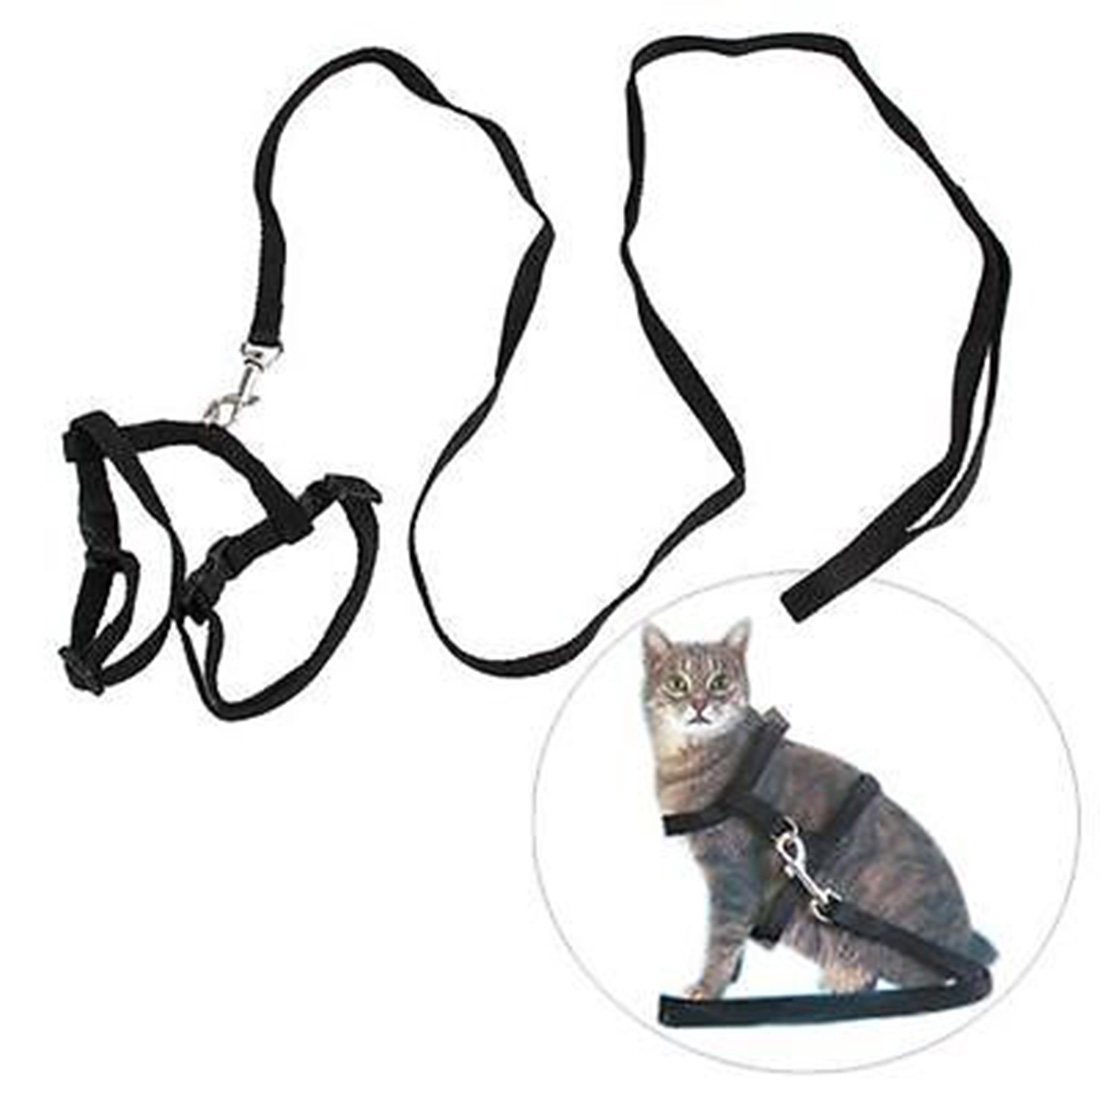 Aliexpress.com : Buy Cat Harness And Leash Nylon Products